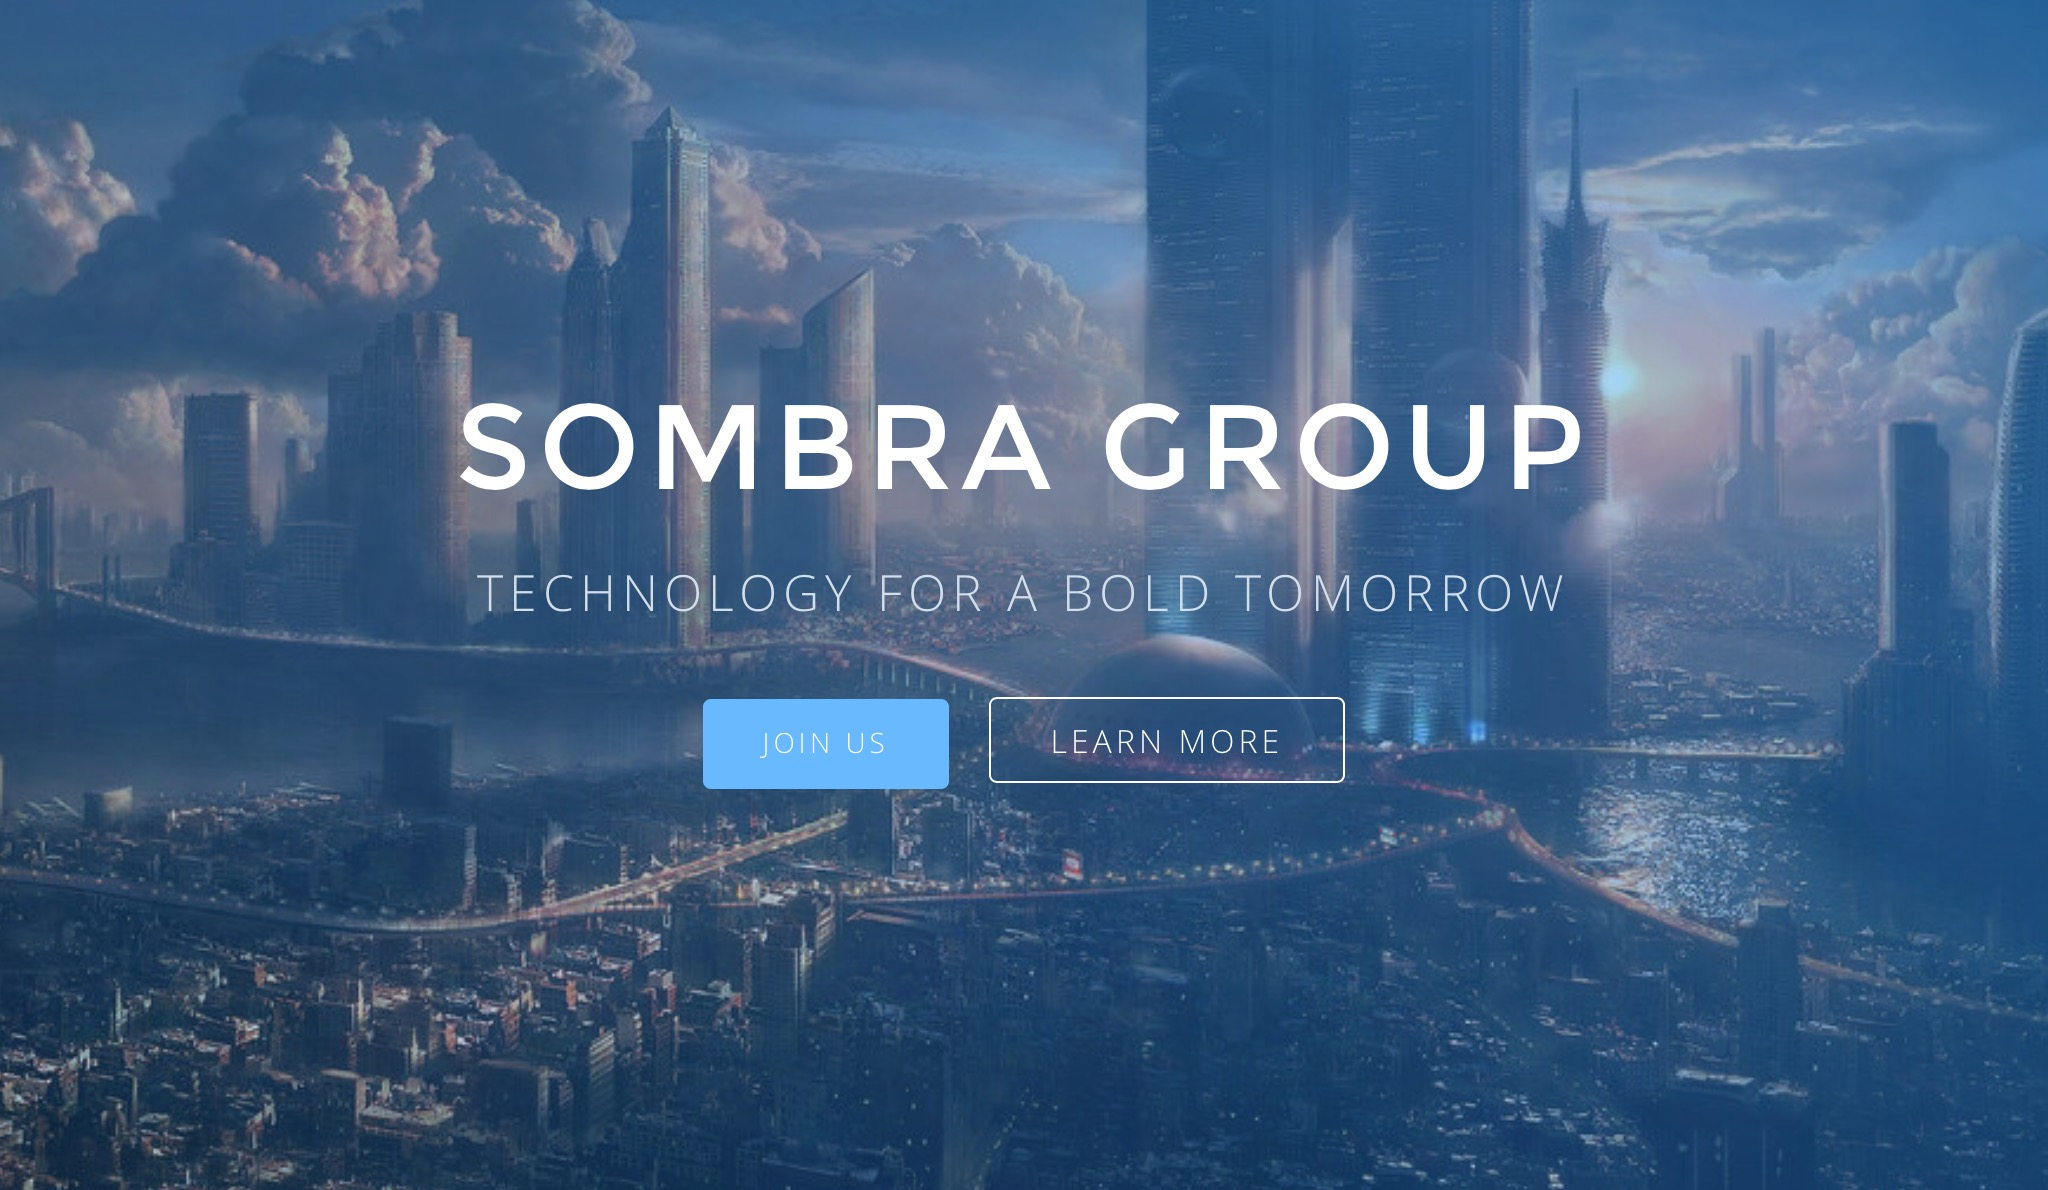 [sombra group]